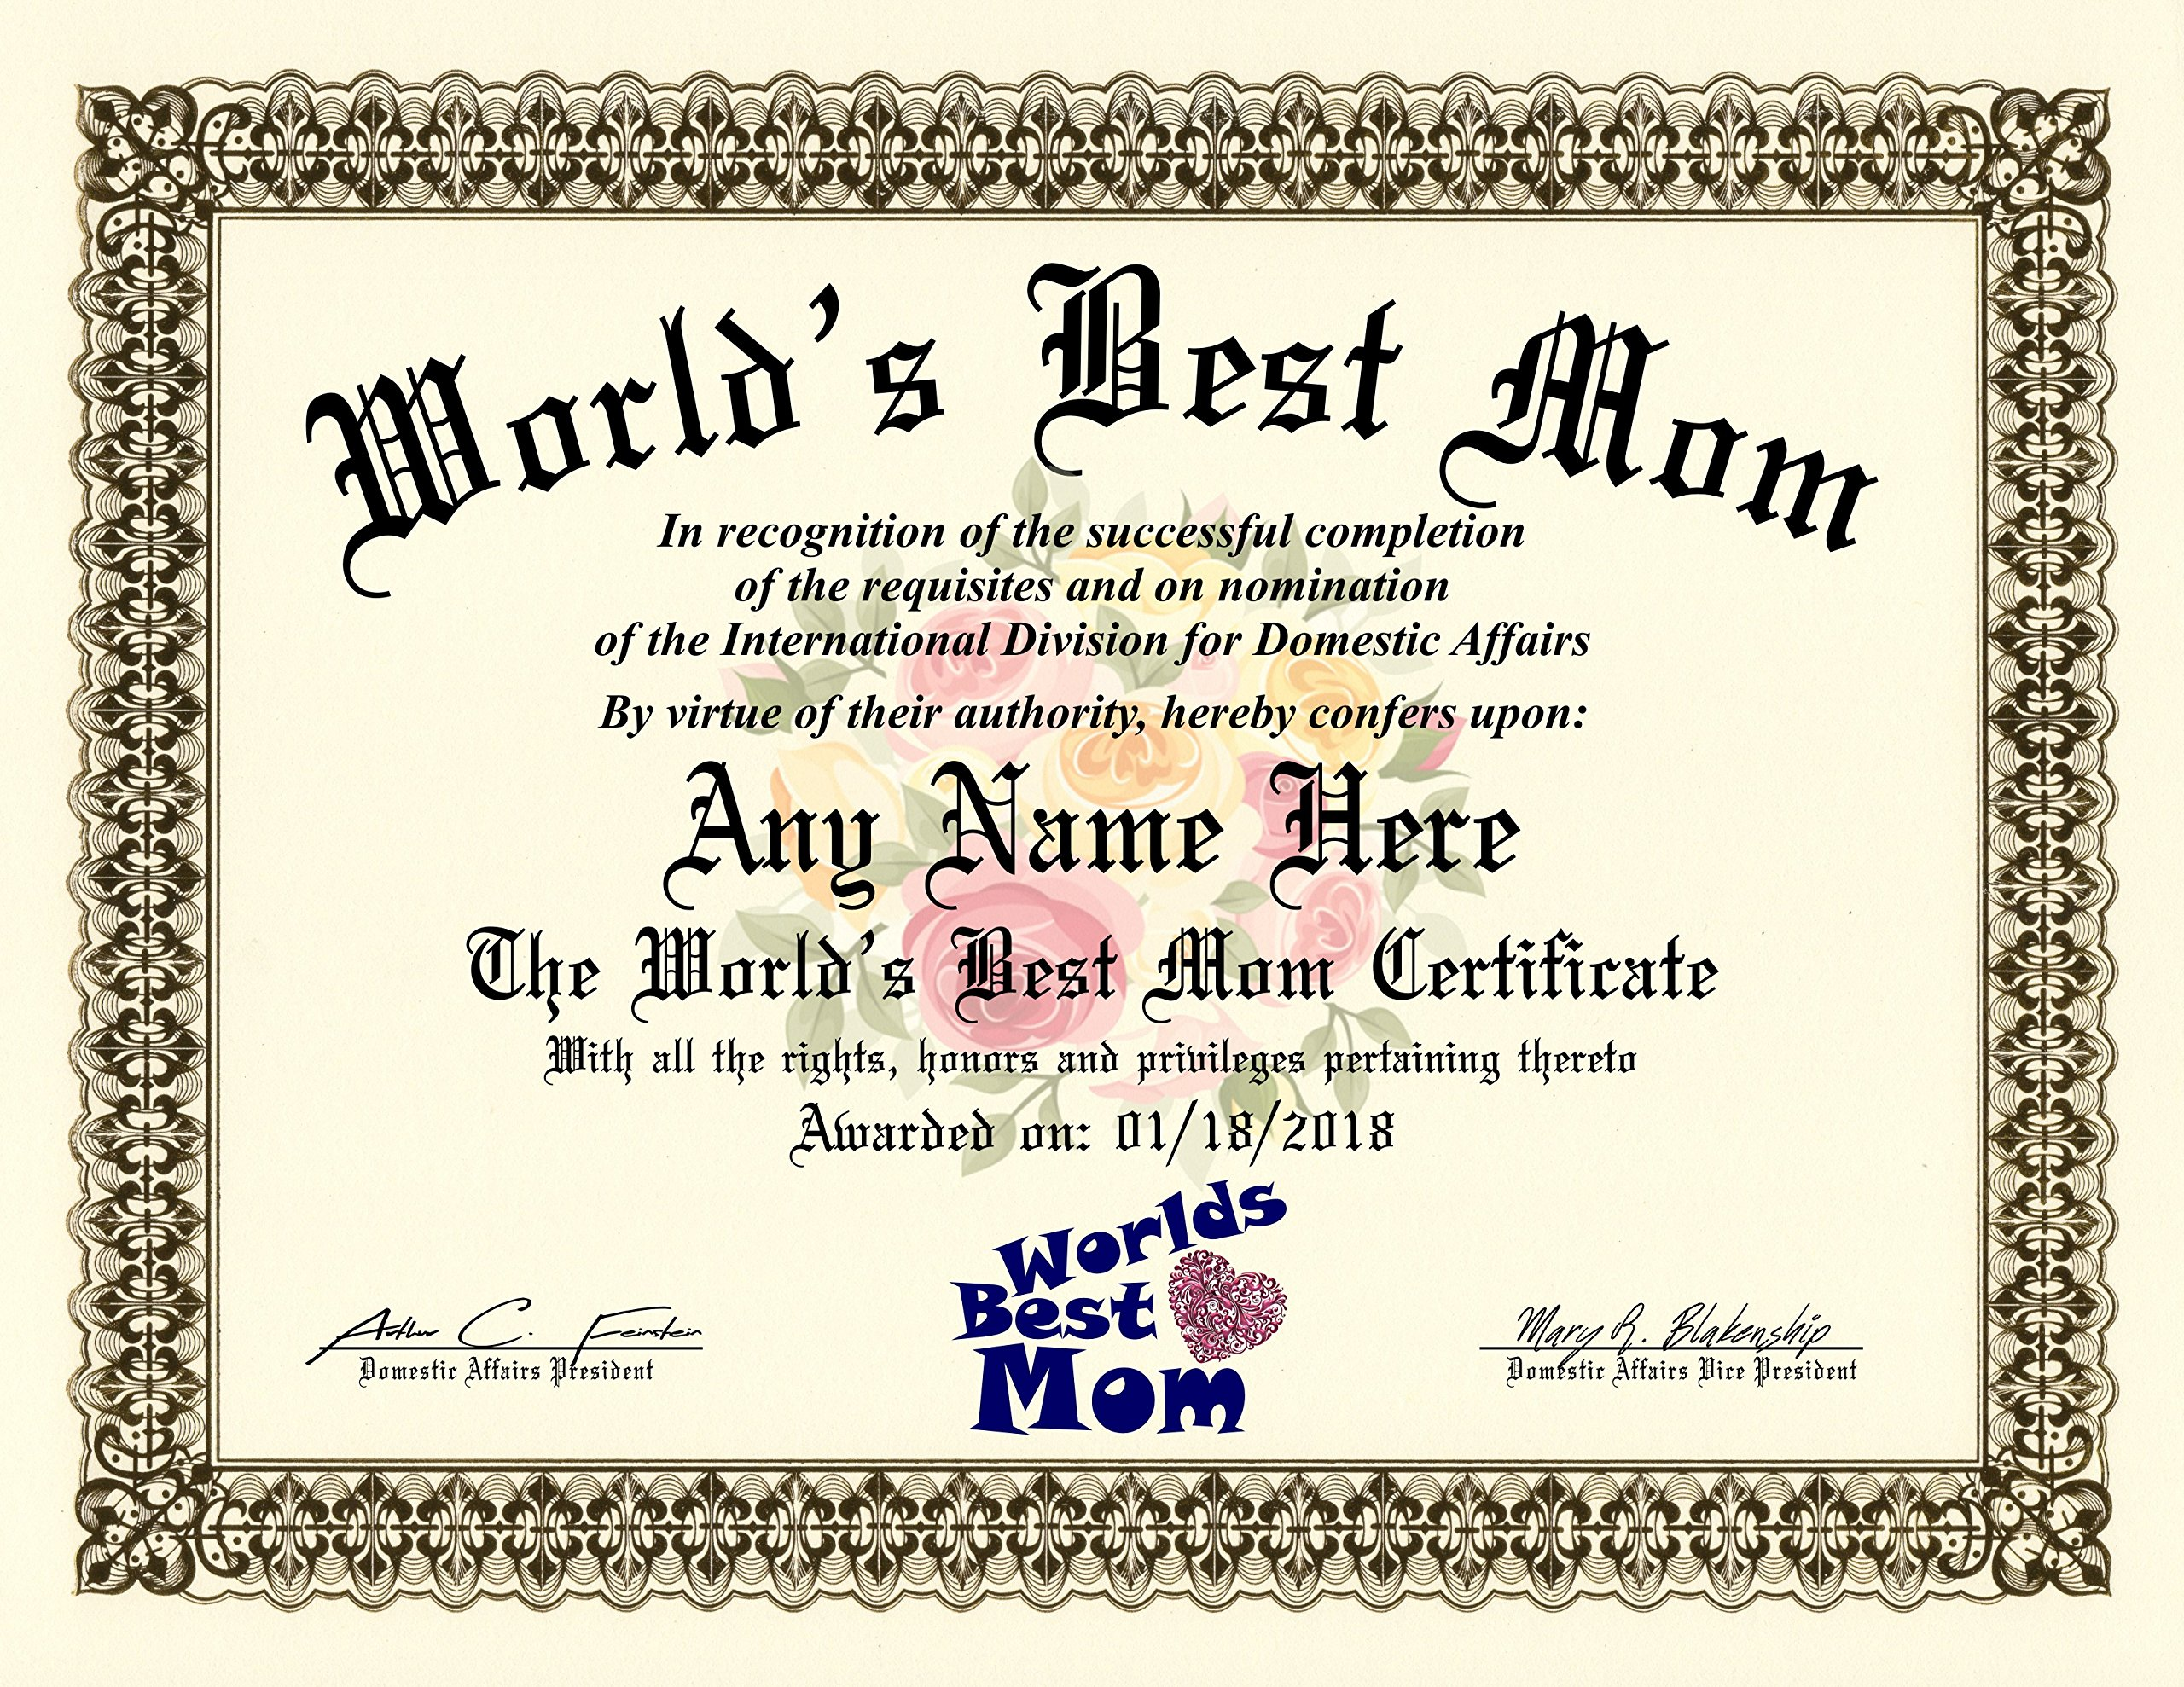 Worlds Best Mom Certificate Award - Custom Printed by us with any NAME & DATE - 8.5 by 11 inches - 100% Real Looking! Free Certificate Folder